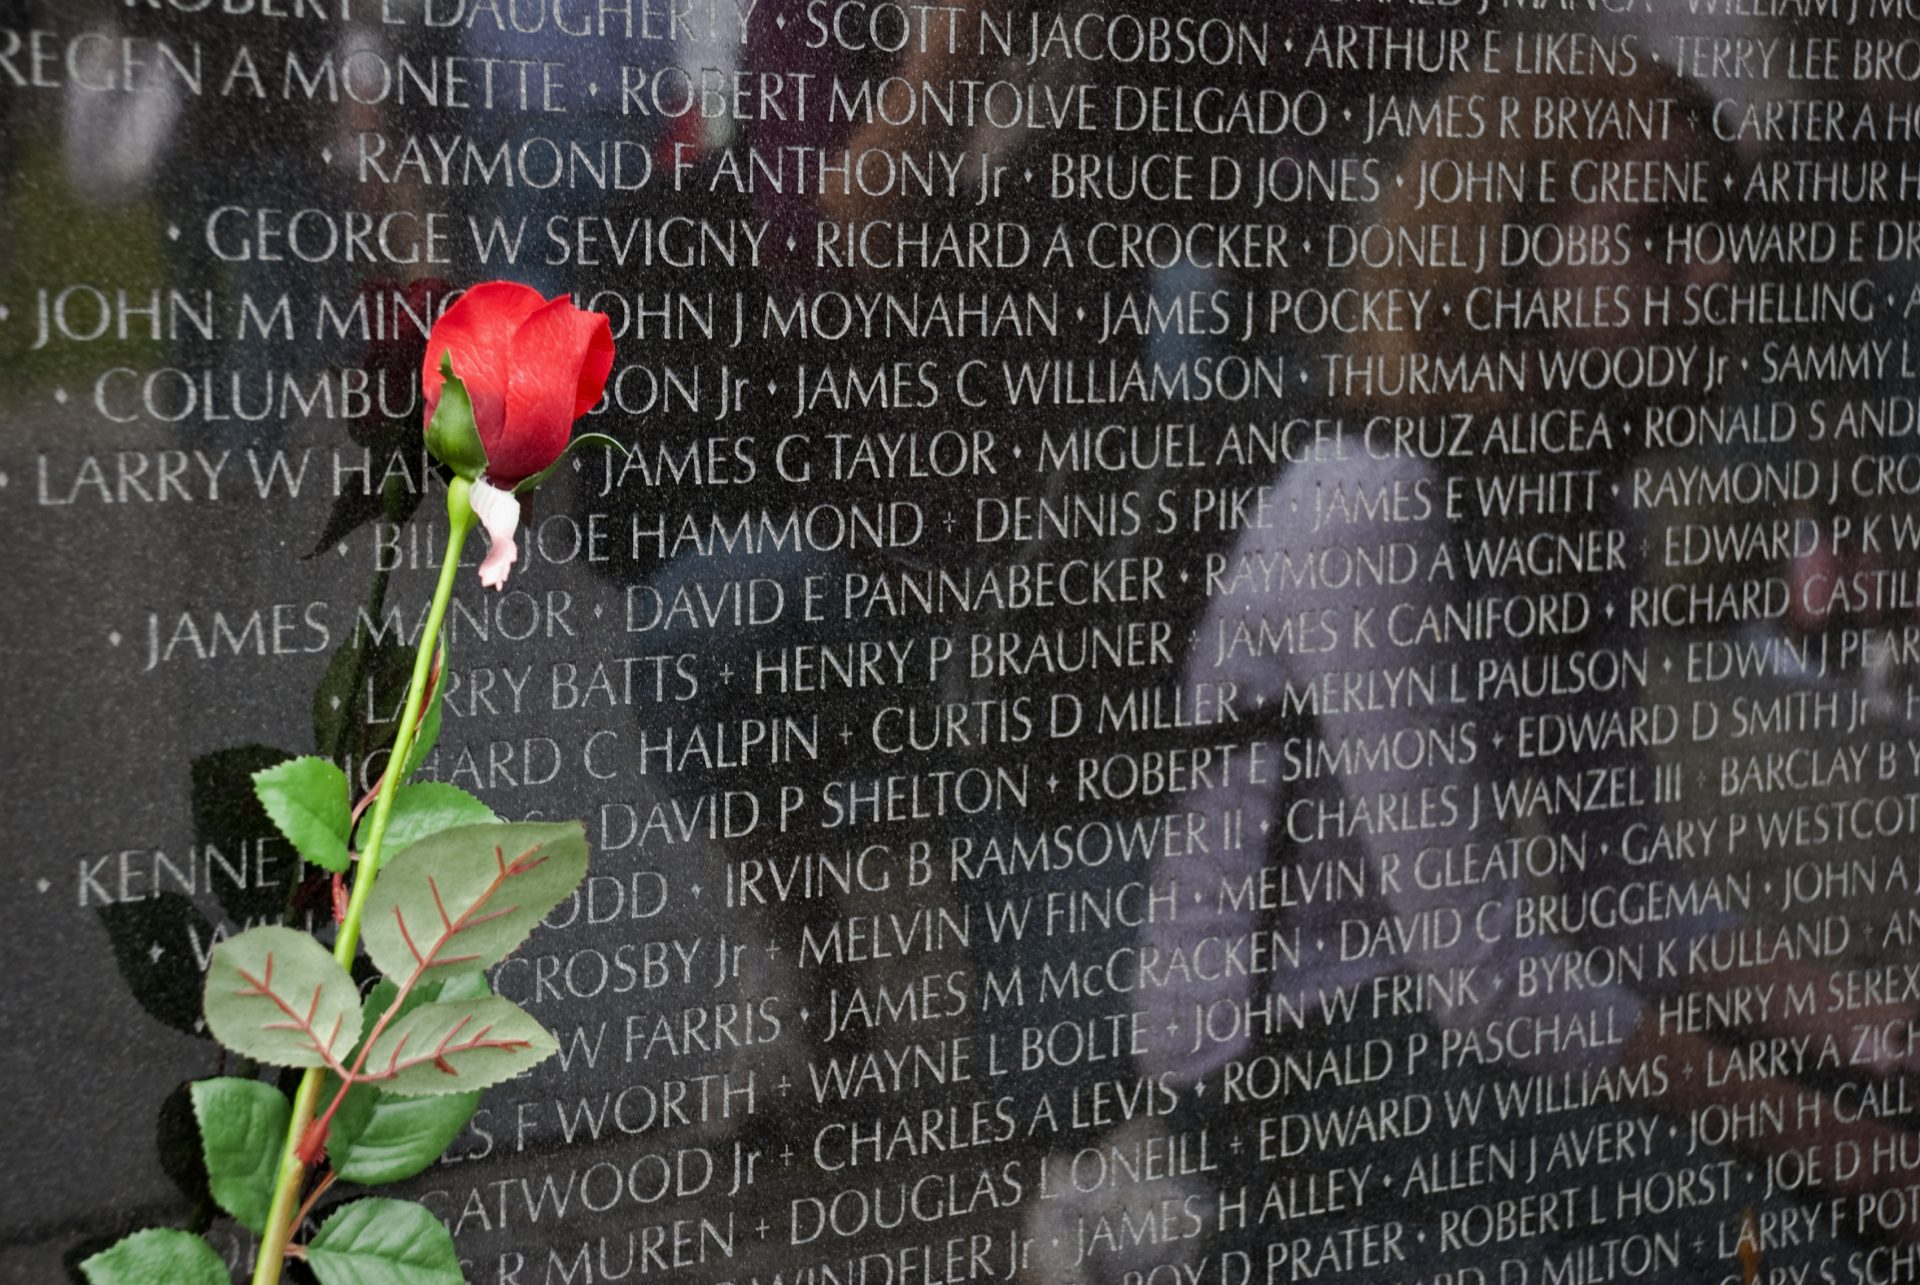 Washington DC, USA - April 9, 2008: A rose rests against a stone slab inscribed with names of the dead at the Vietnam Veterans Memorial. Visitors to the memorial are reflected in the stone.